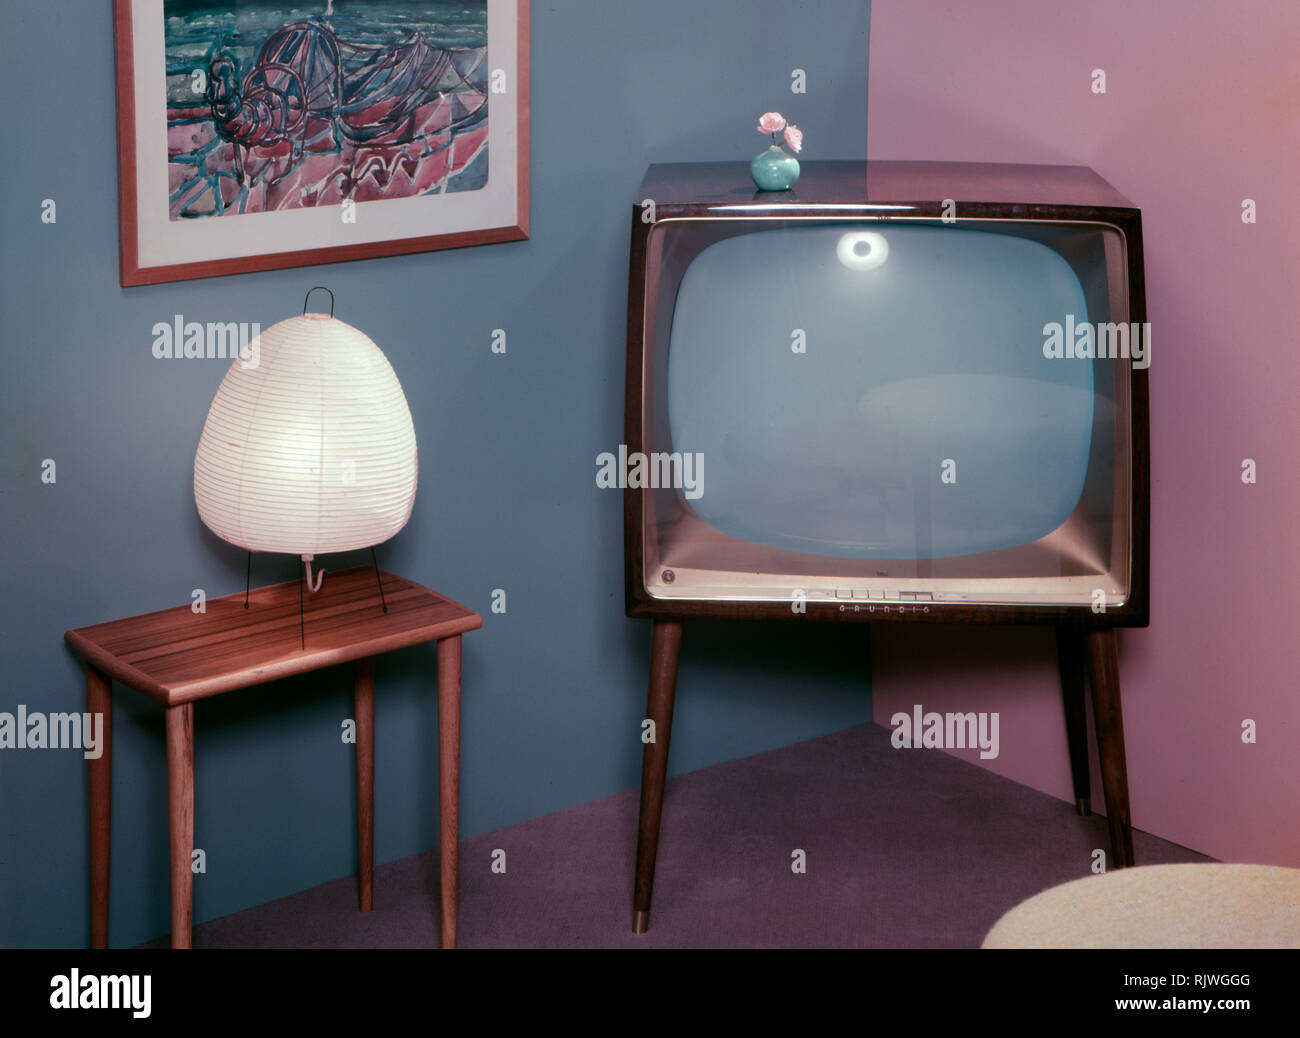 Television in the 1950s. A Grundig television set that was available for customers 1957. A typical 1950s design with a wooden case standing on thin legs. ref BV66-3 - Stock Image